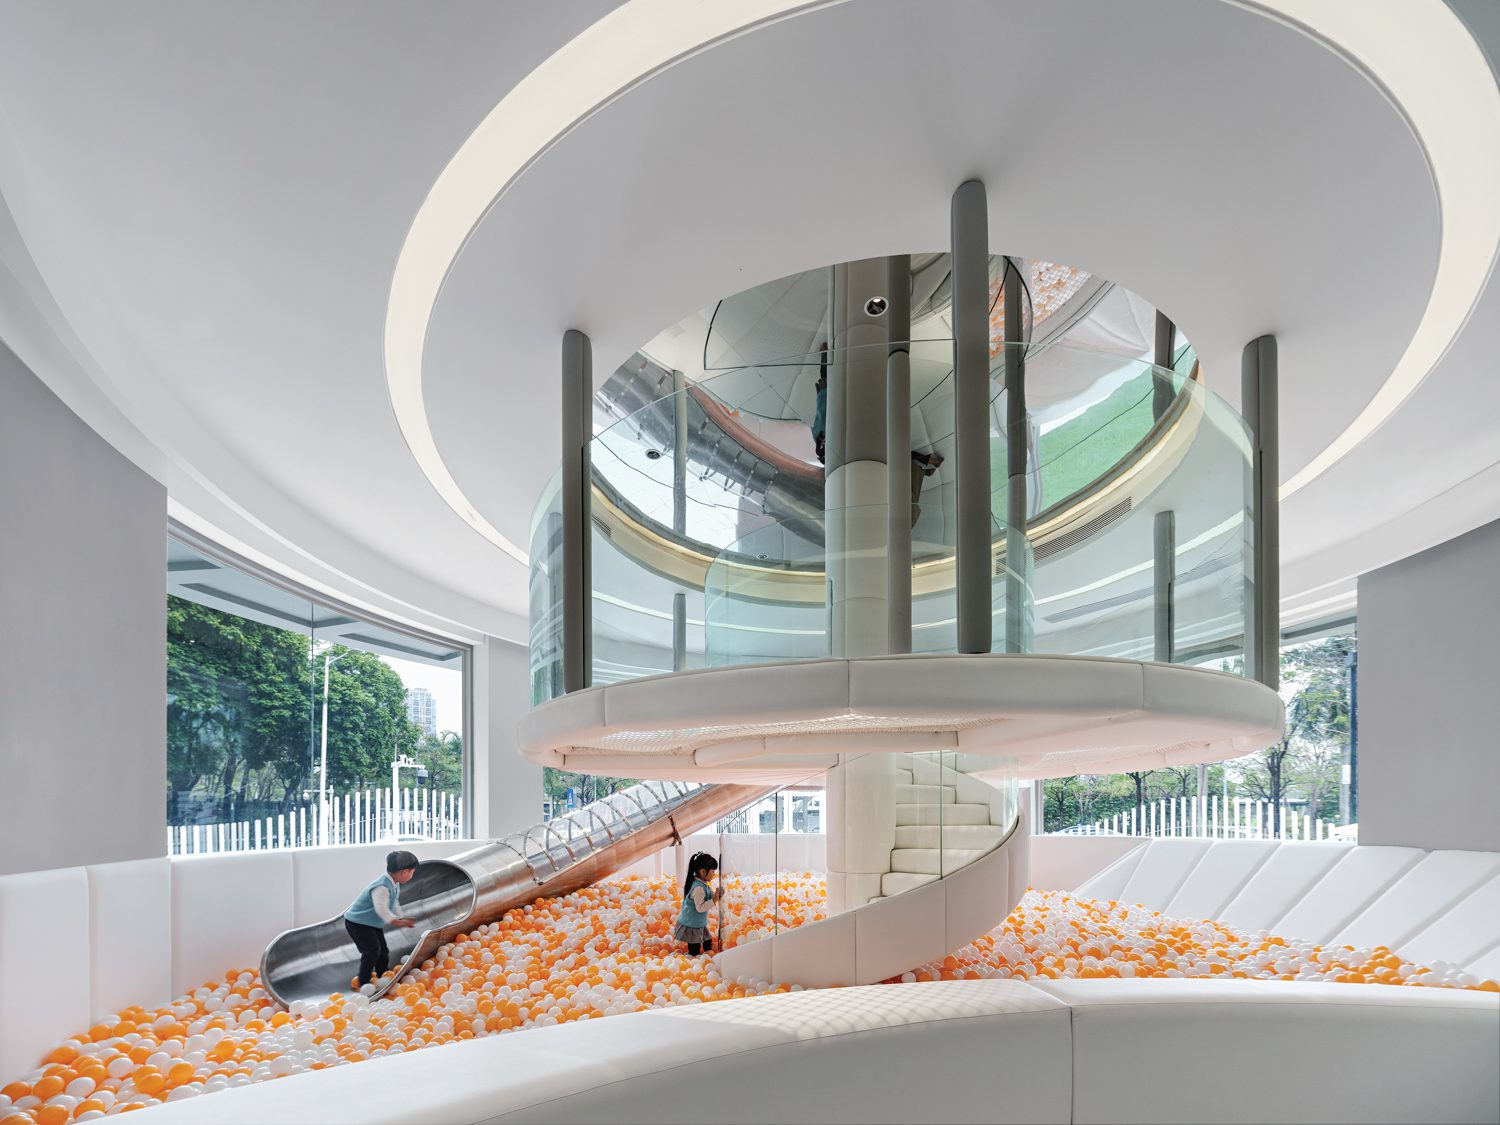 Indoor ball pit with peach colored balls beneath a spiral ceiling.